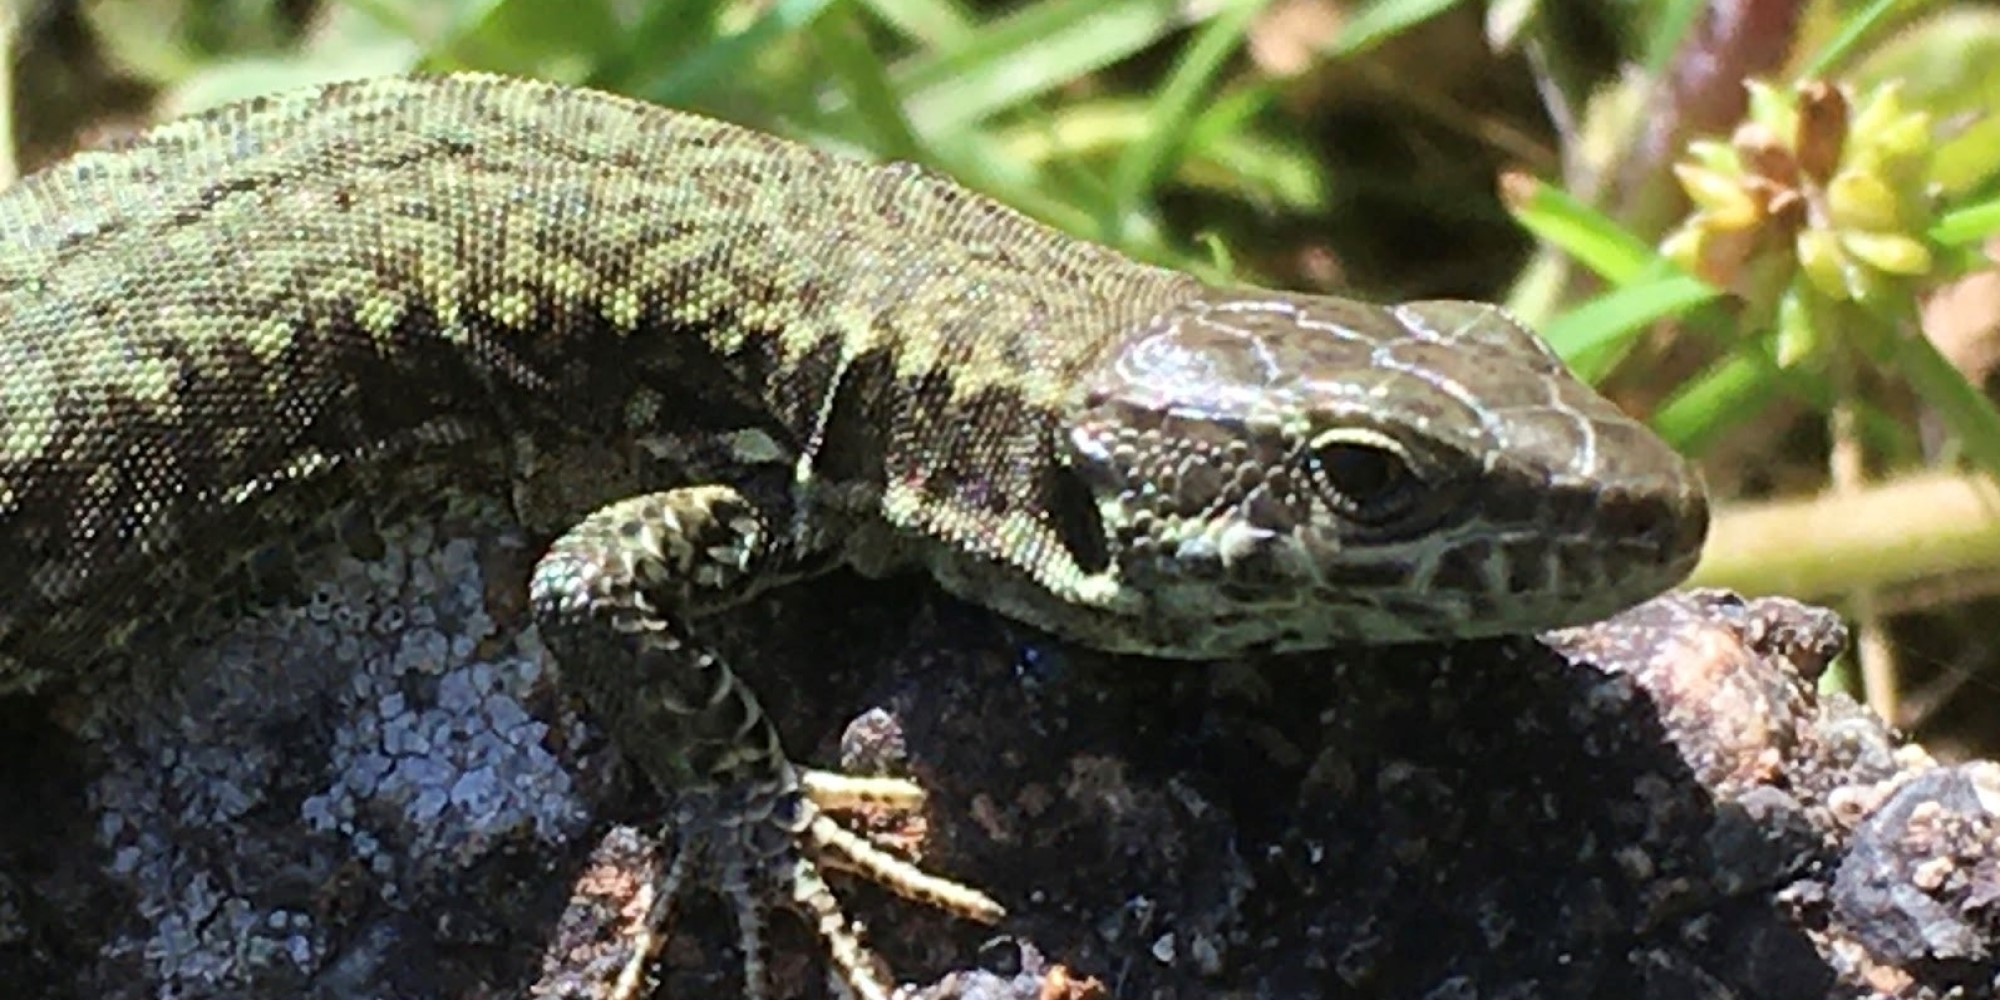 How a roadside zoo unleashed a lizard invasion on Victoria